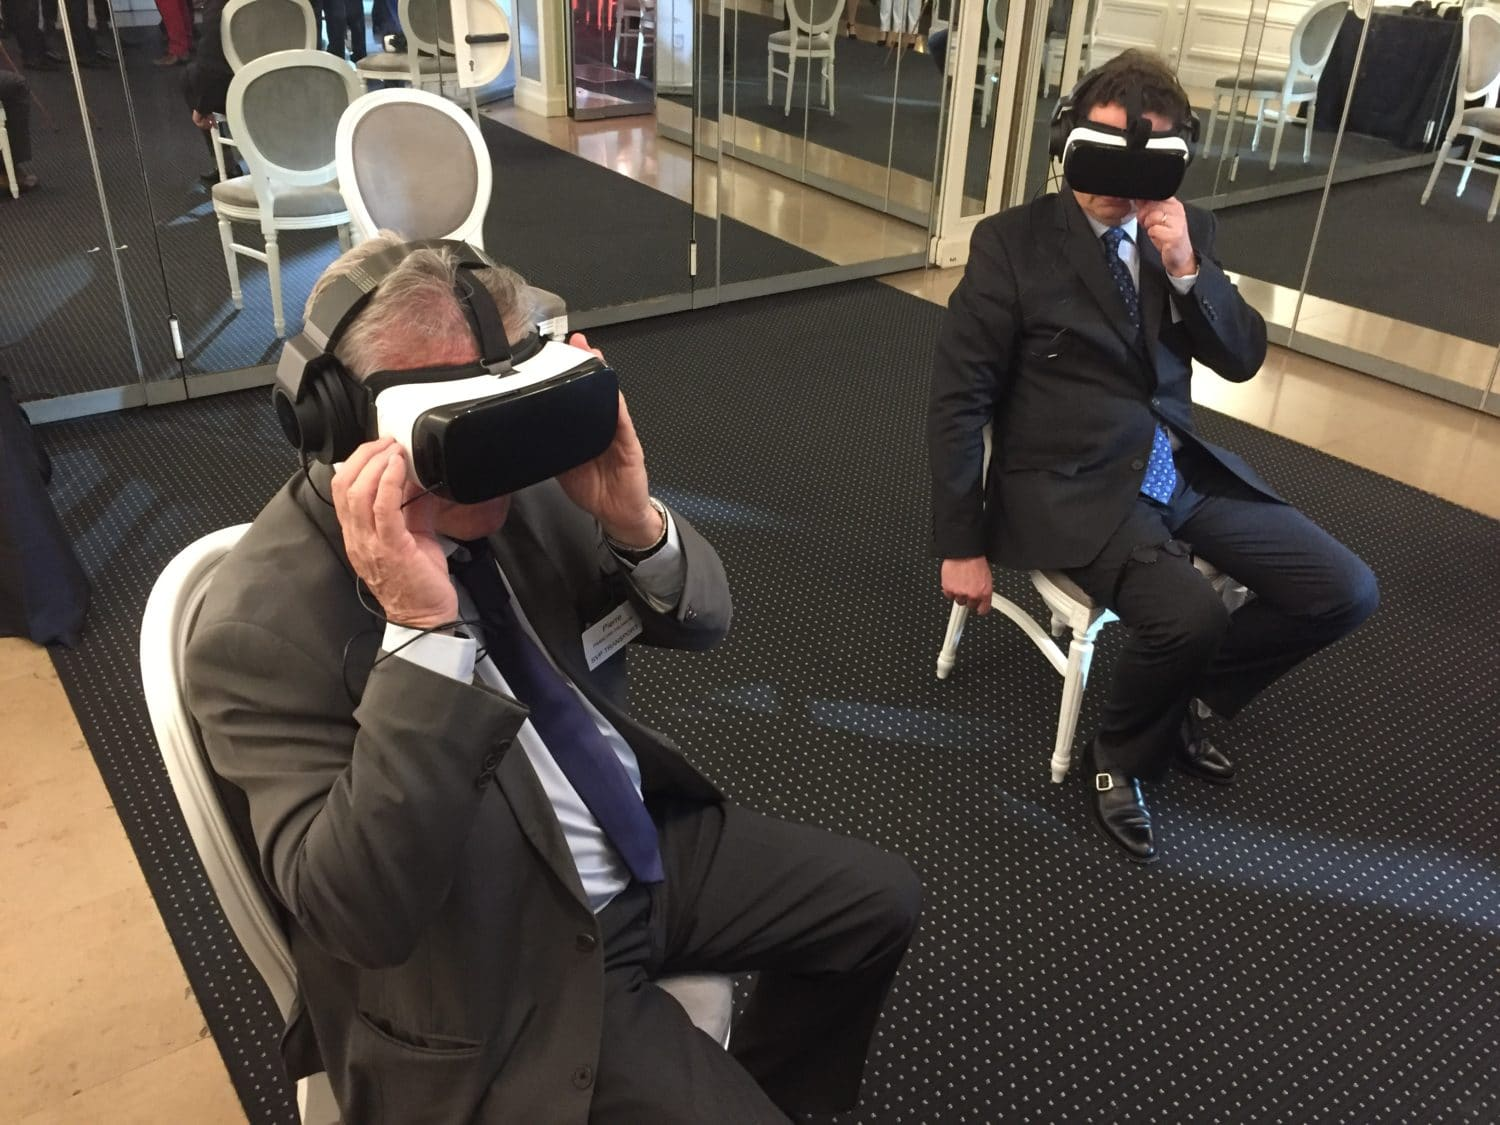 animation samsung gear vr et location samsung gear vr businessmen